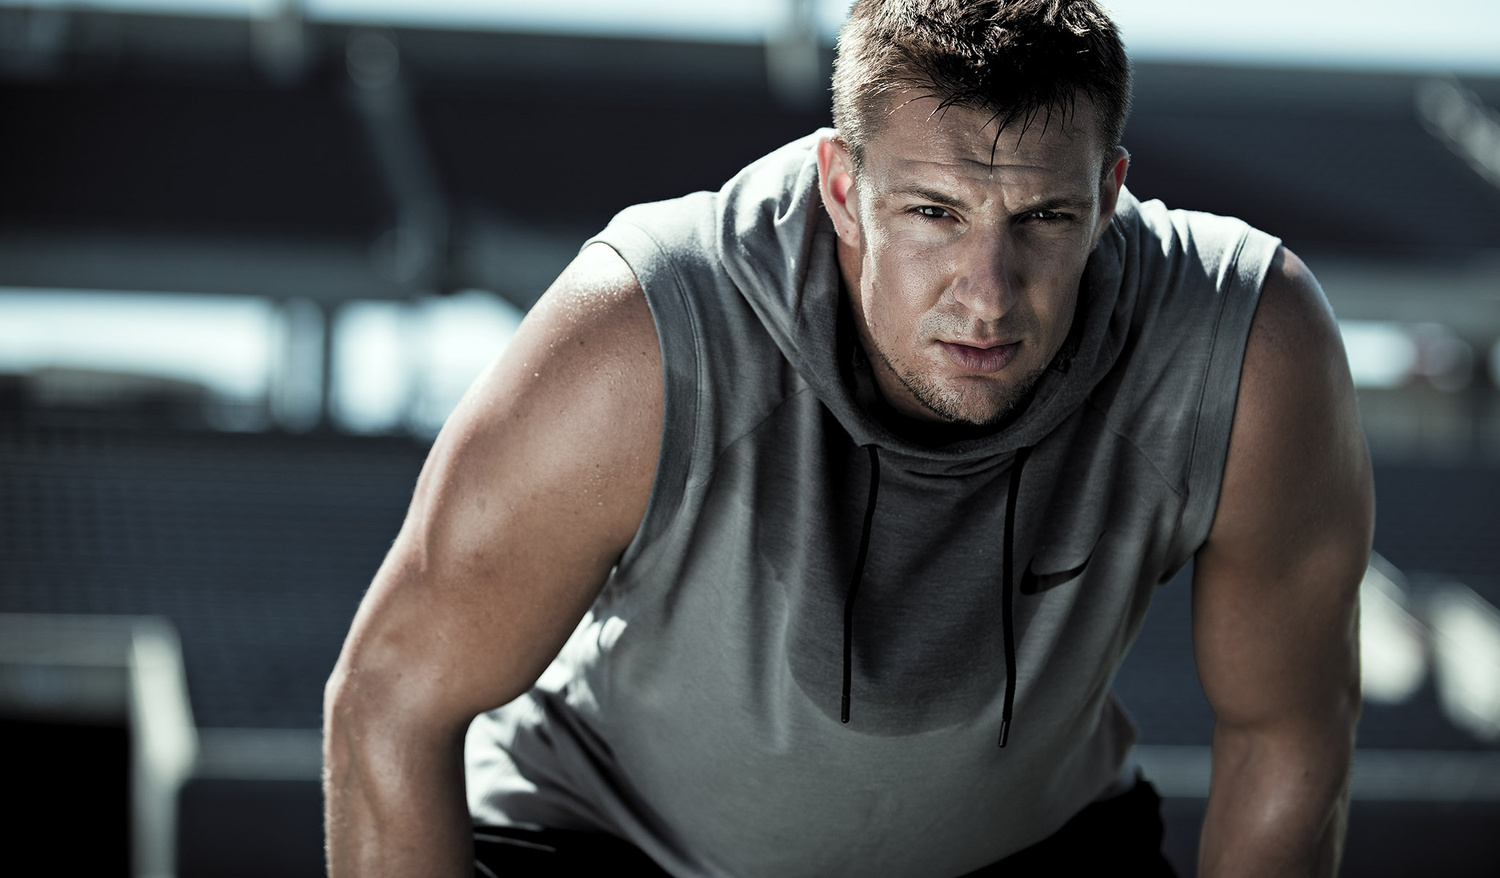 Working out with the Gronk by James Quantz Jr